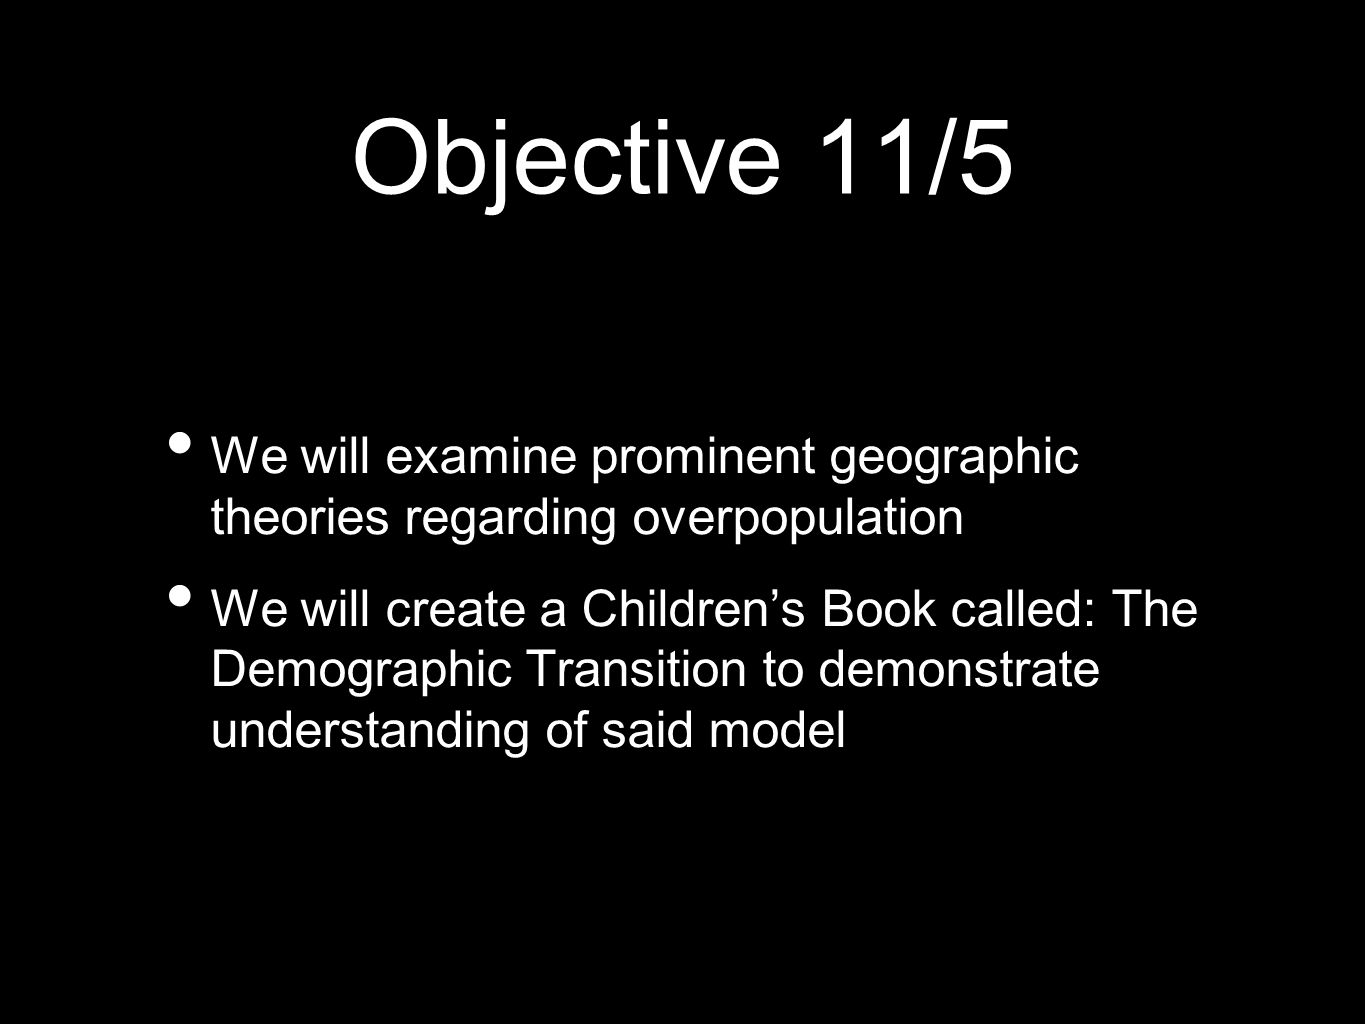 Objective 11/5 We will examine prominent geographic theories regarding overpopulation We will create a Childrens Book called: The Demographic Transiti